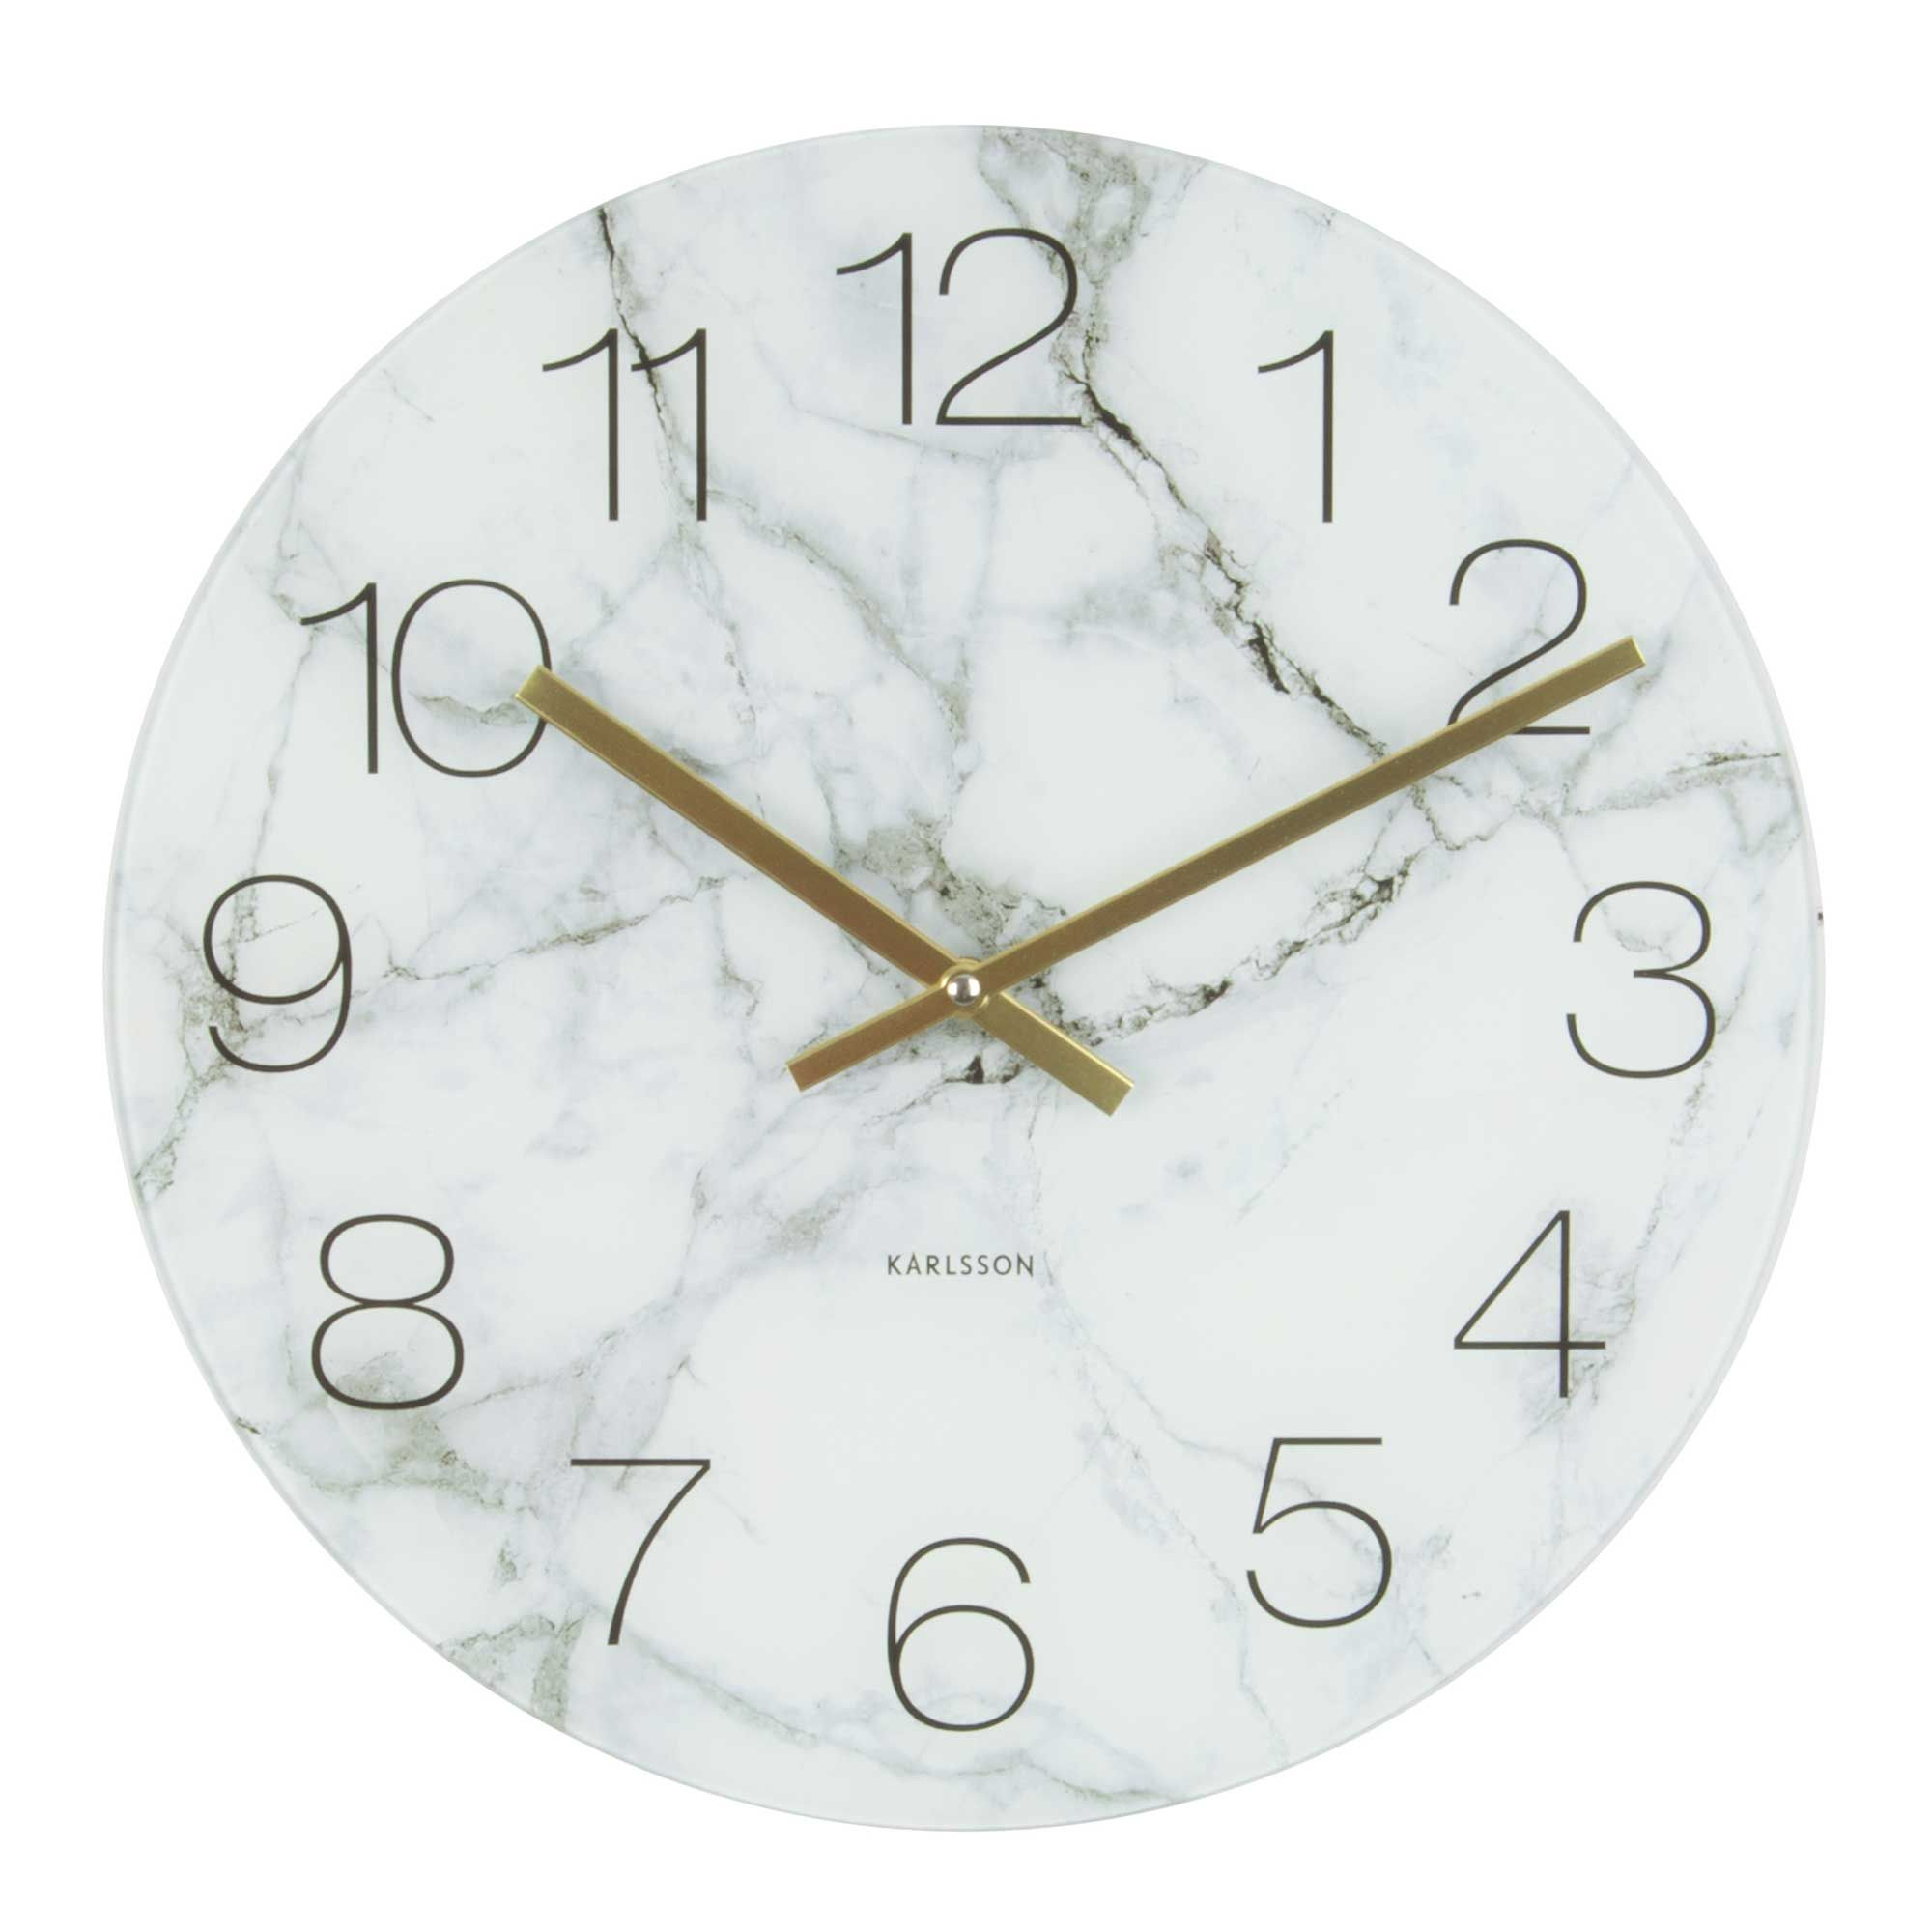 This Stunning Wall Clock Features A Timeless Marble Effect Glass Display With Stunning Brass Handles Offeri Black Wall Clock Bathroom Wall Clocks Marble Clock